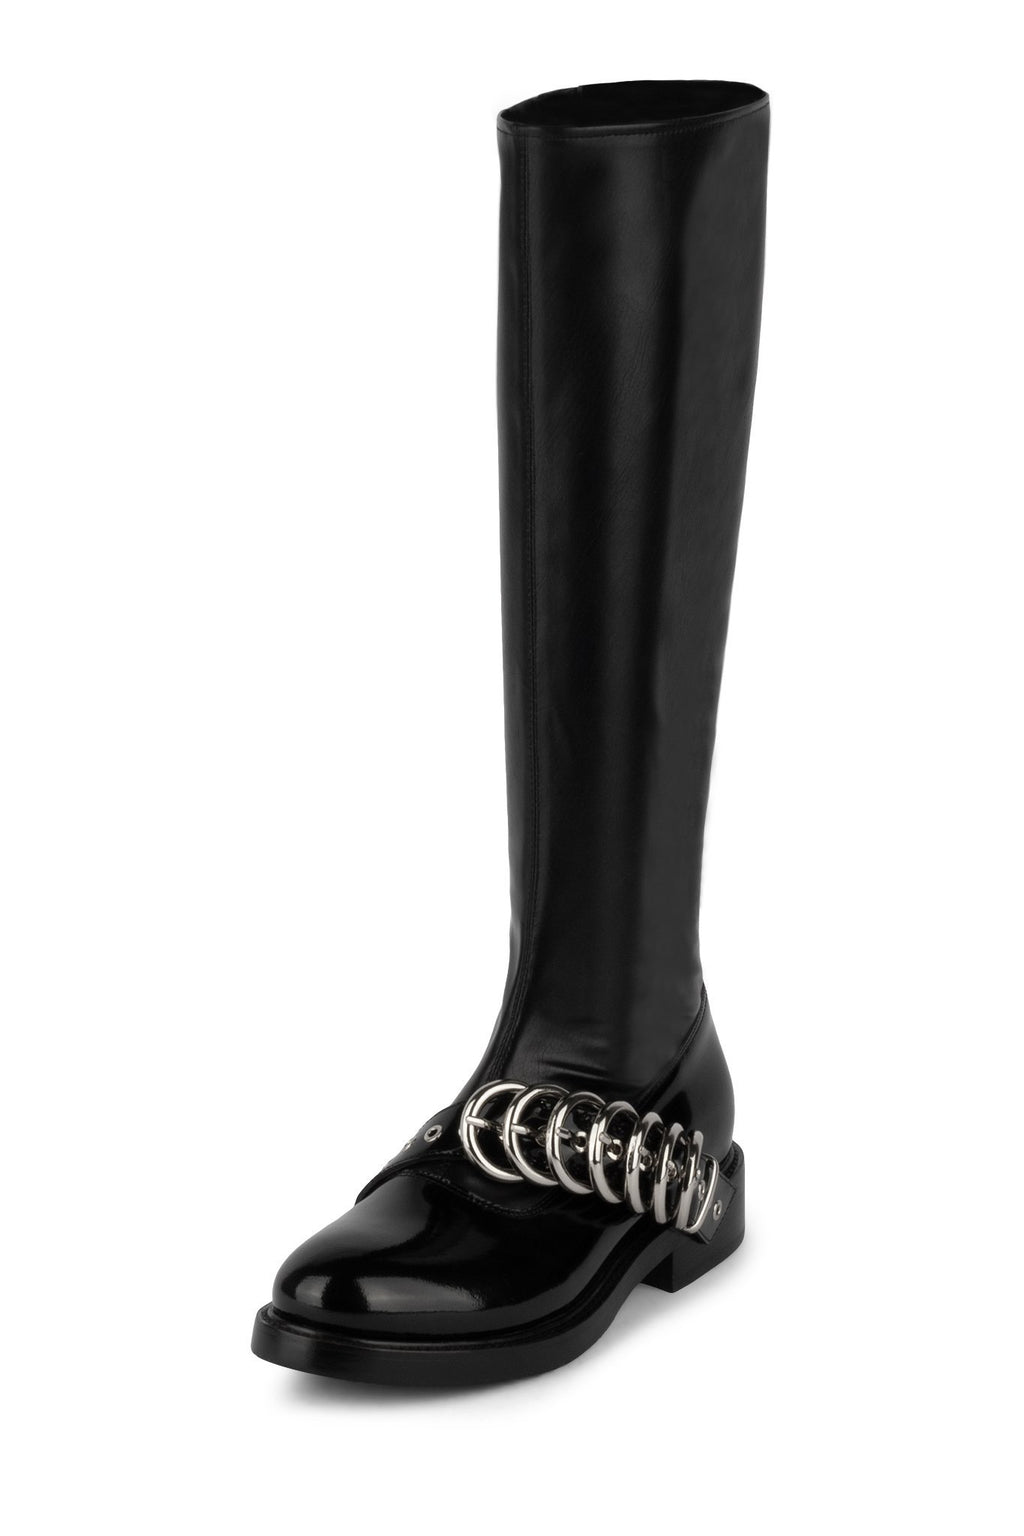 BRITAIN Knee-High Boot YYH